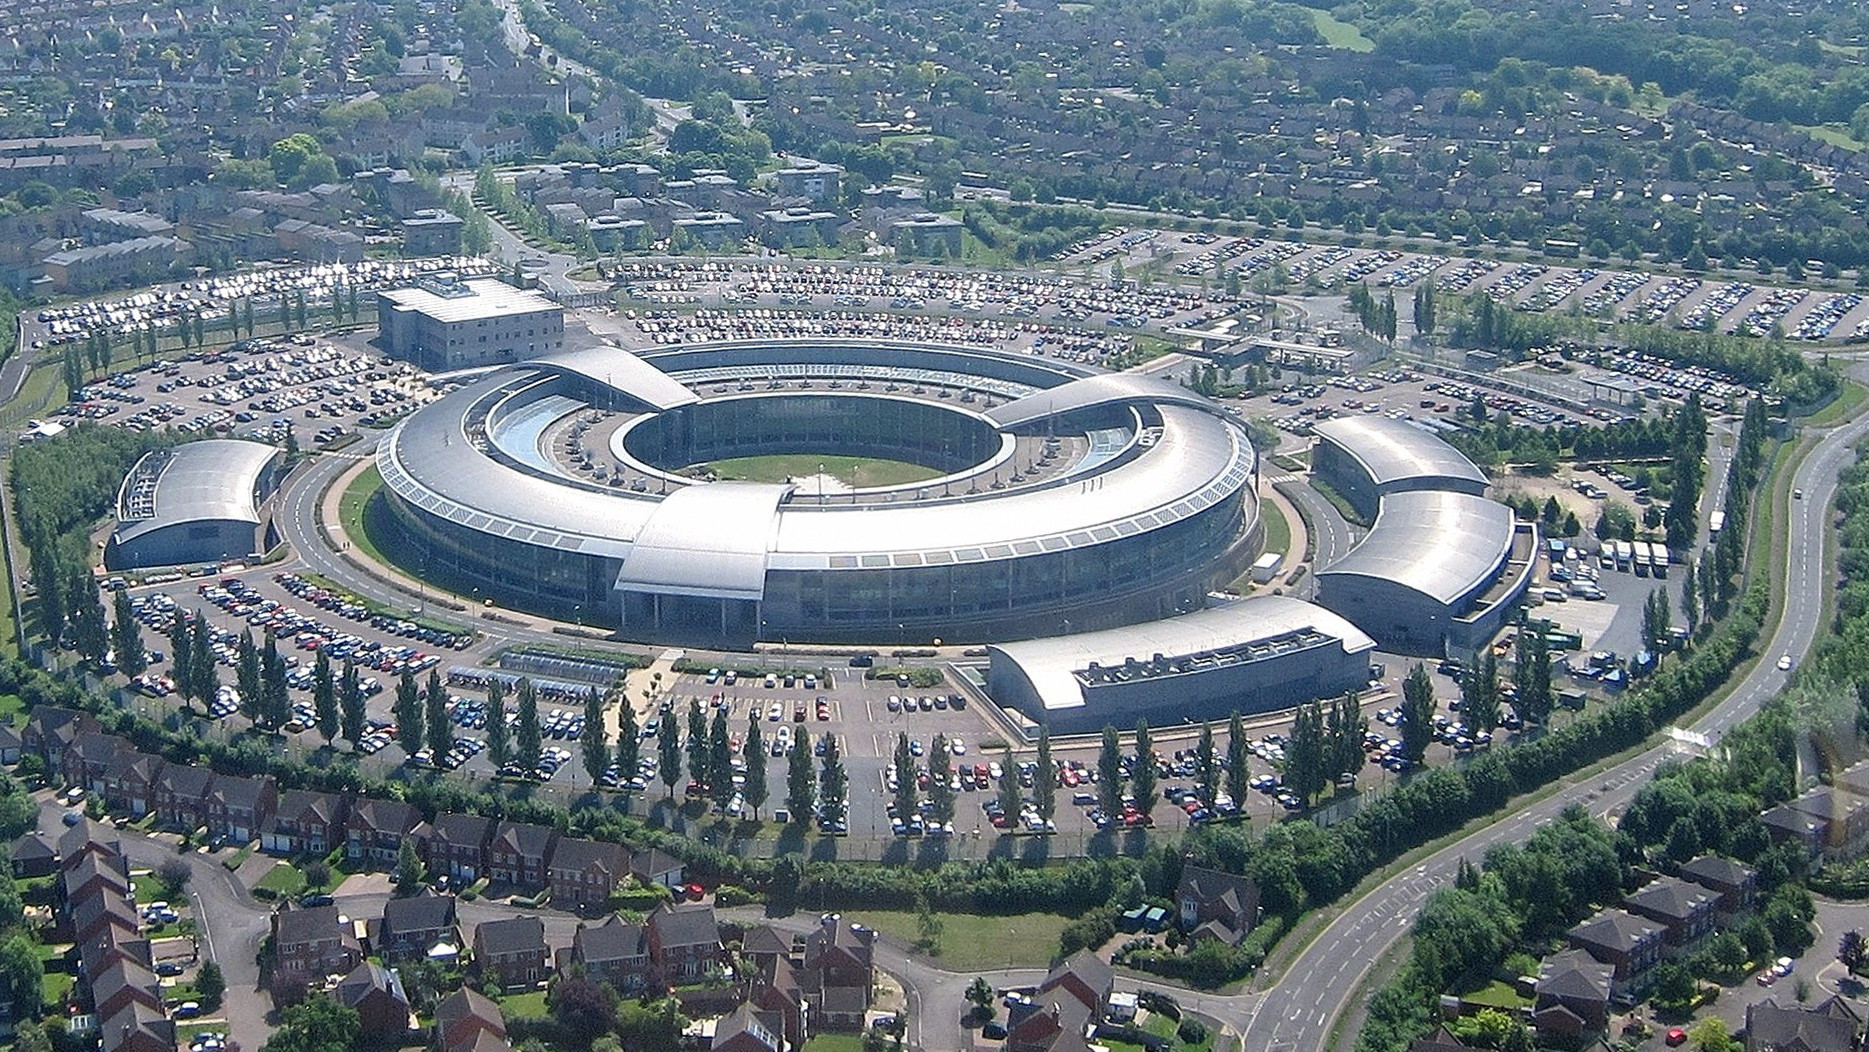 UK: GCHQ official puts the dampener on Huawei's 5G hopes